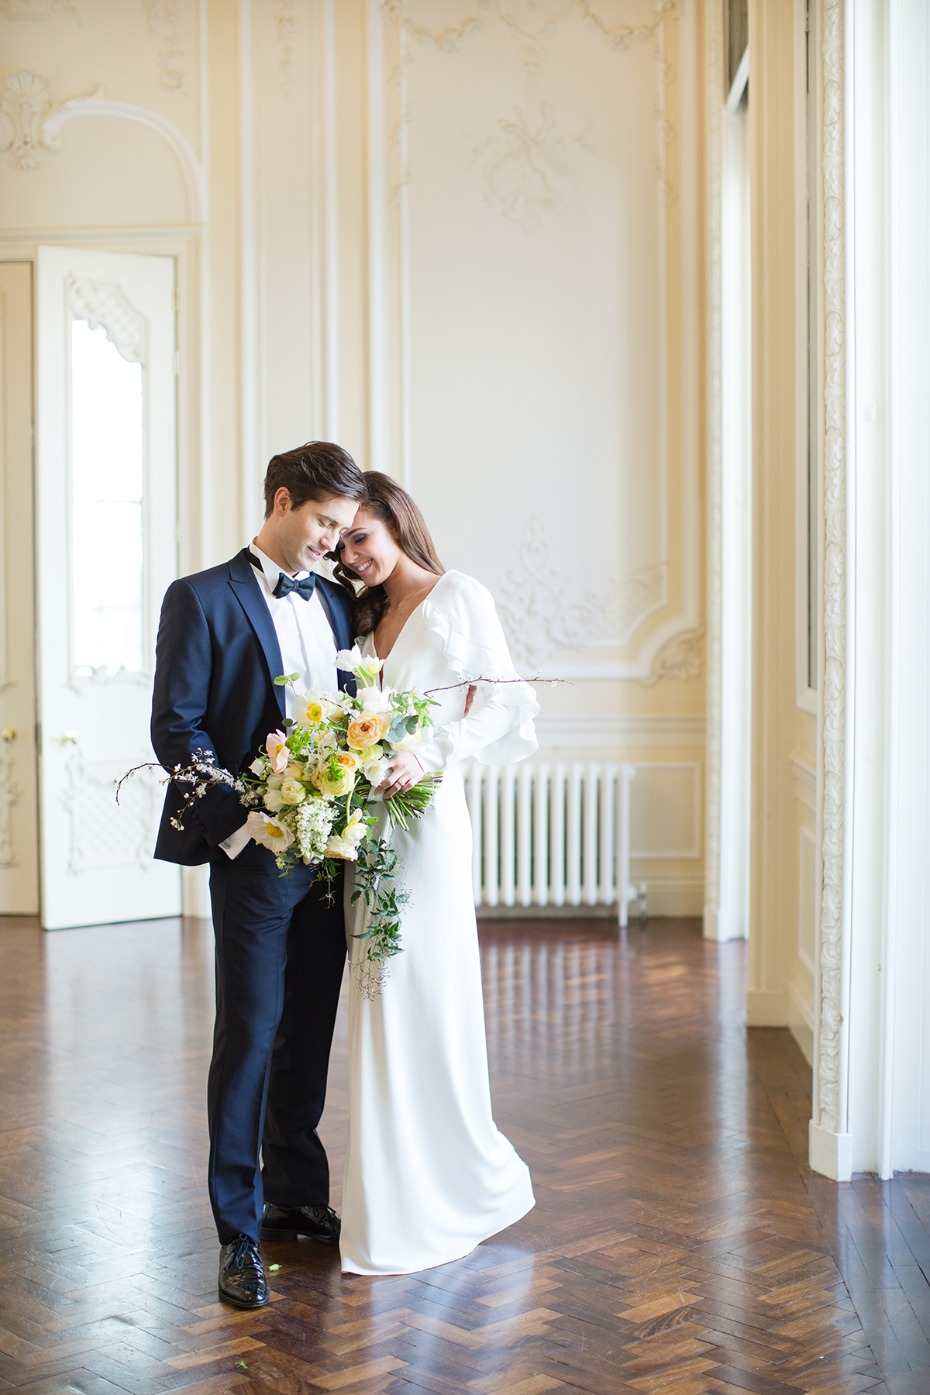 romantic and classic bride and groom wedding photo idea